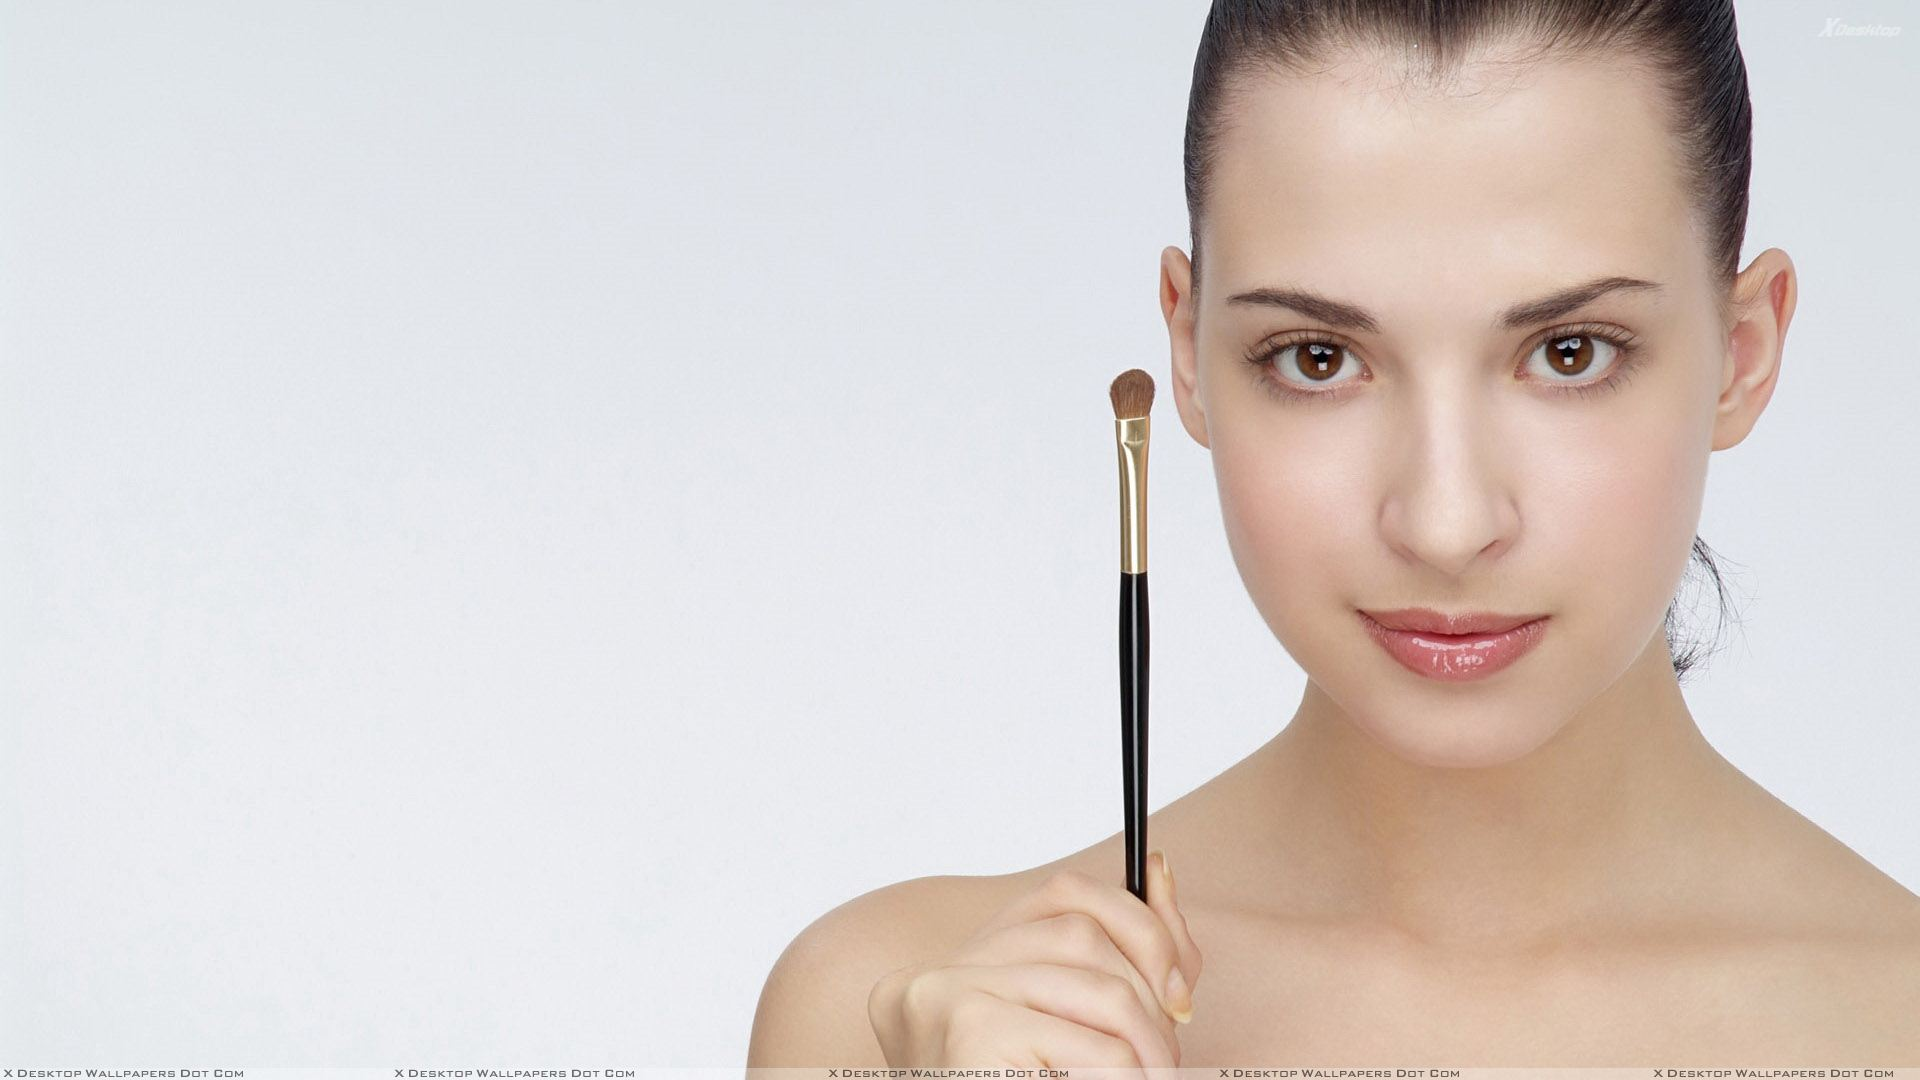 Fever Girl Wallpaper How To Get Rid Of Acne Scars